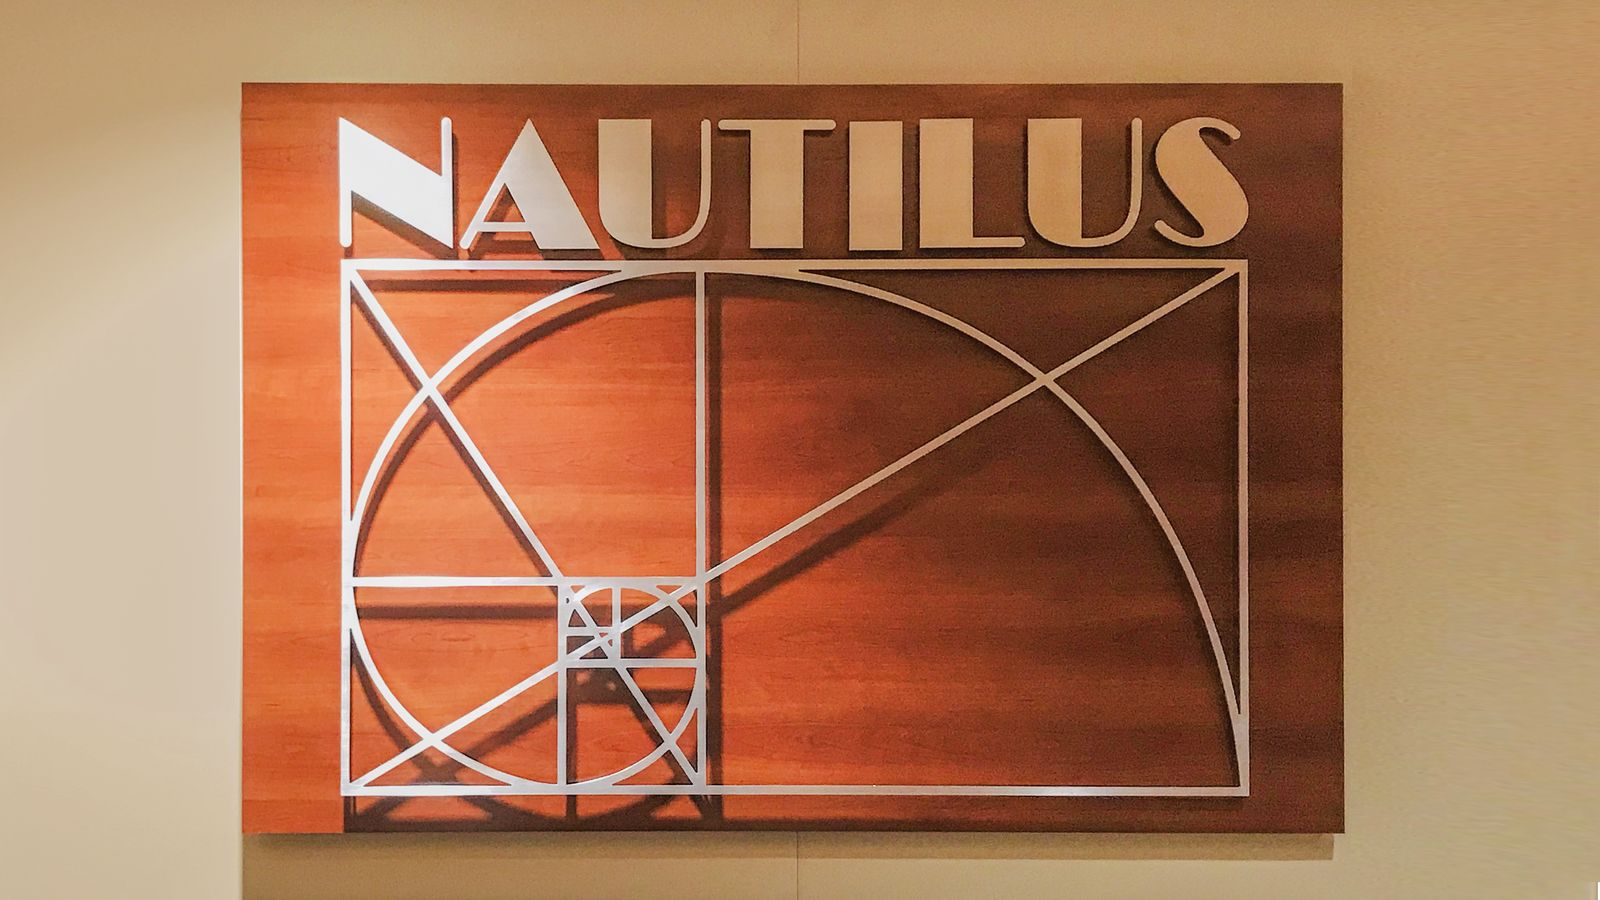 Nautilus 3D interior sign